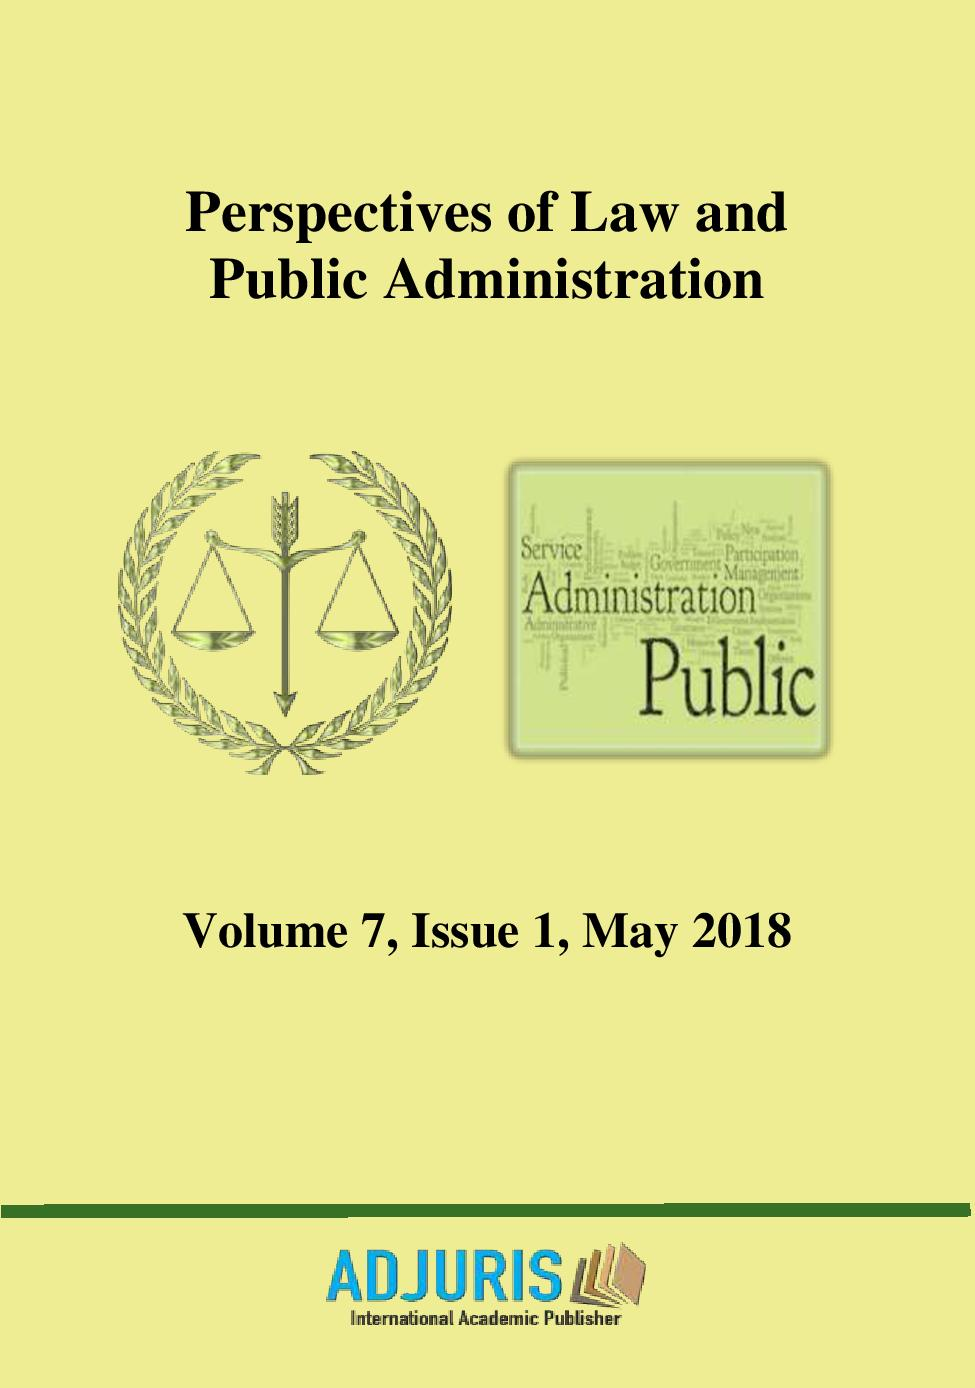 Perspectives of Law and Public Administration Cover Image